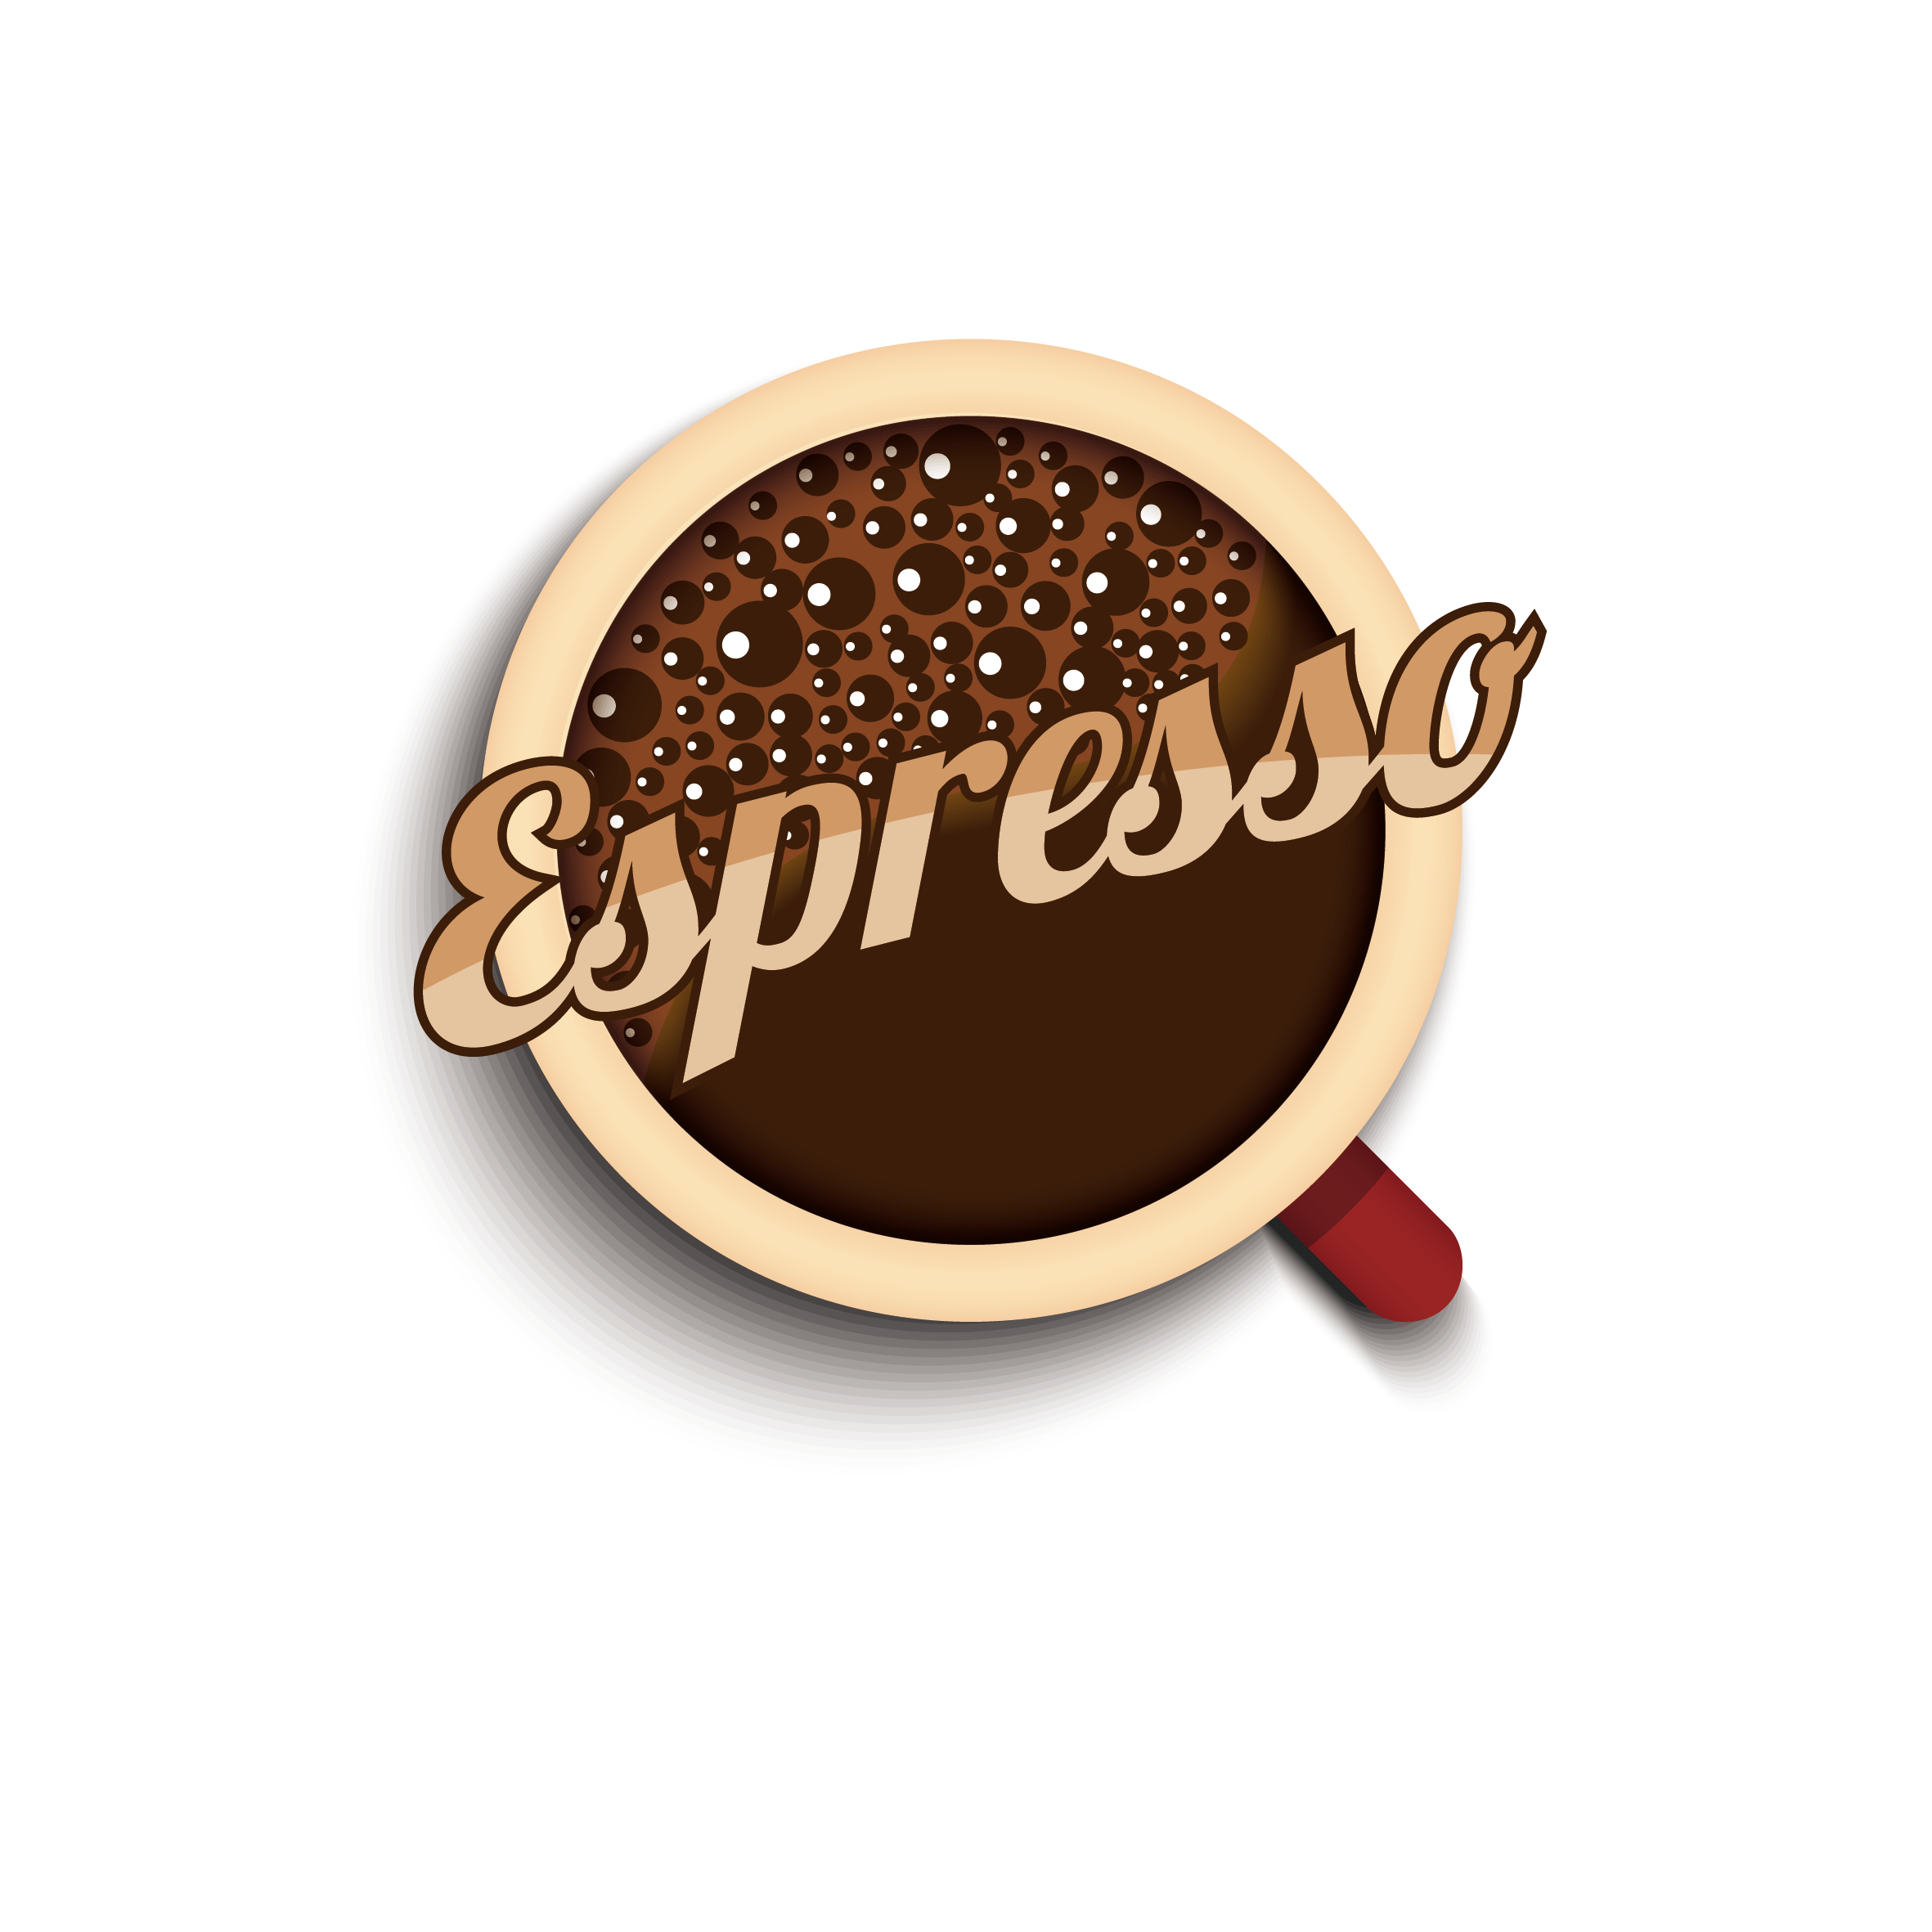 2362x2362 Coffee Cup Espresso Cafe Coffee Bean